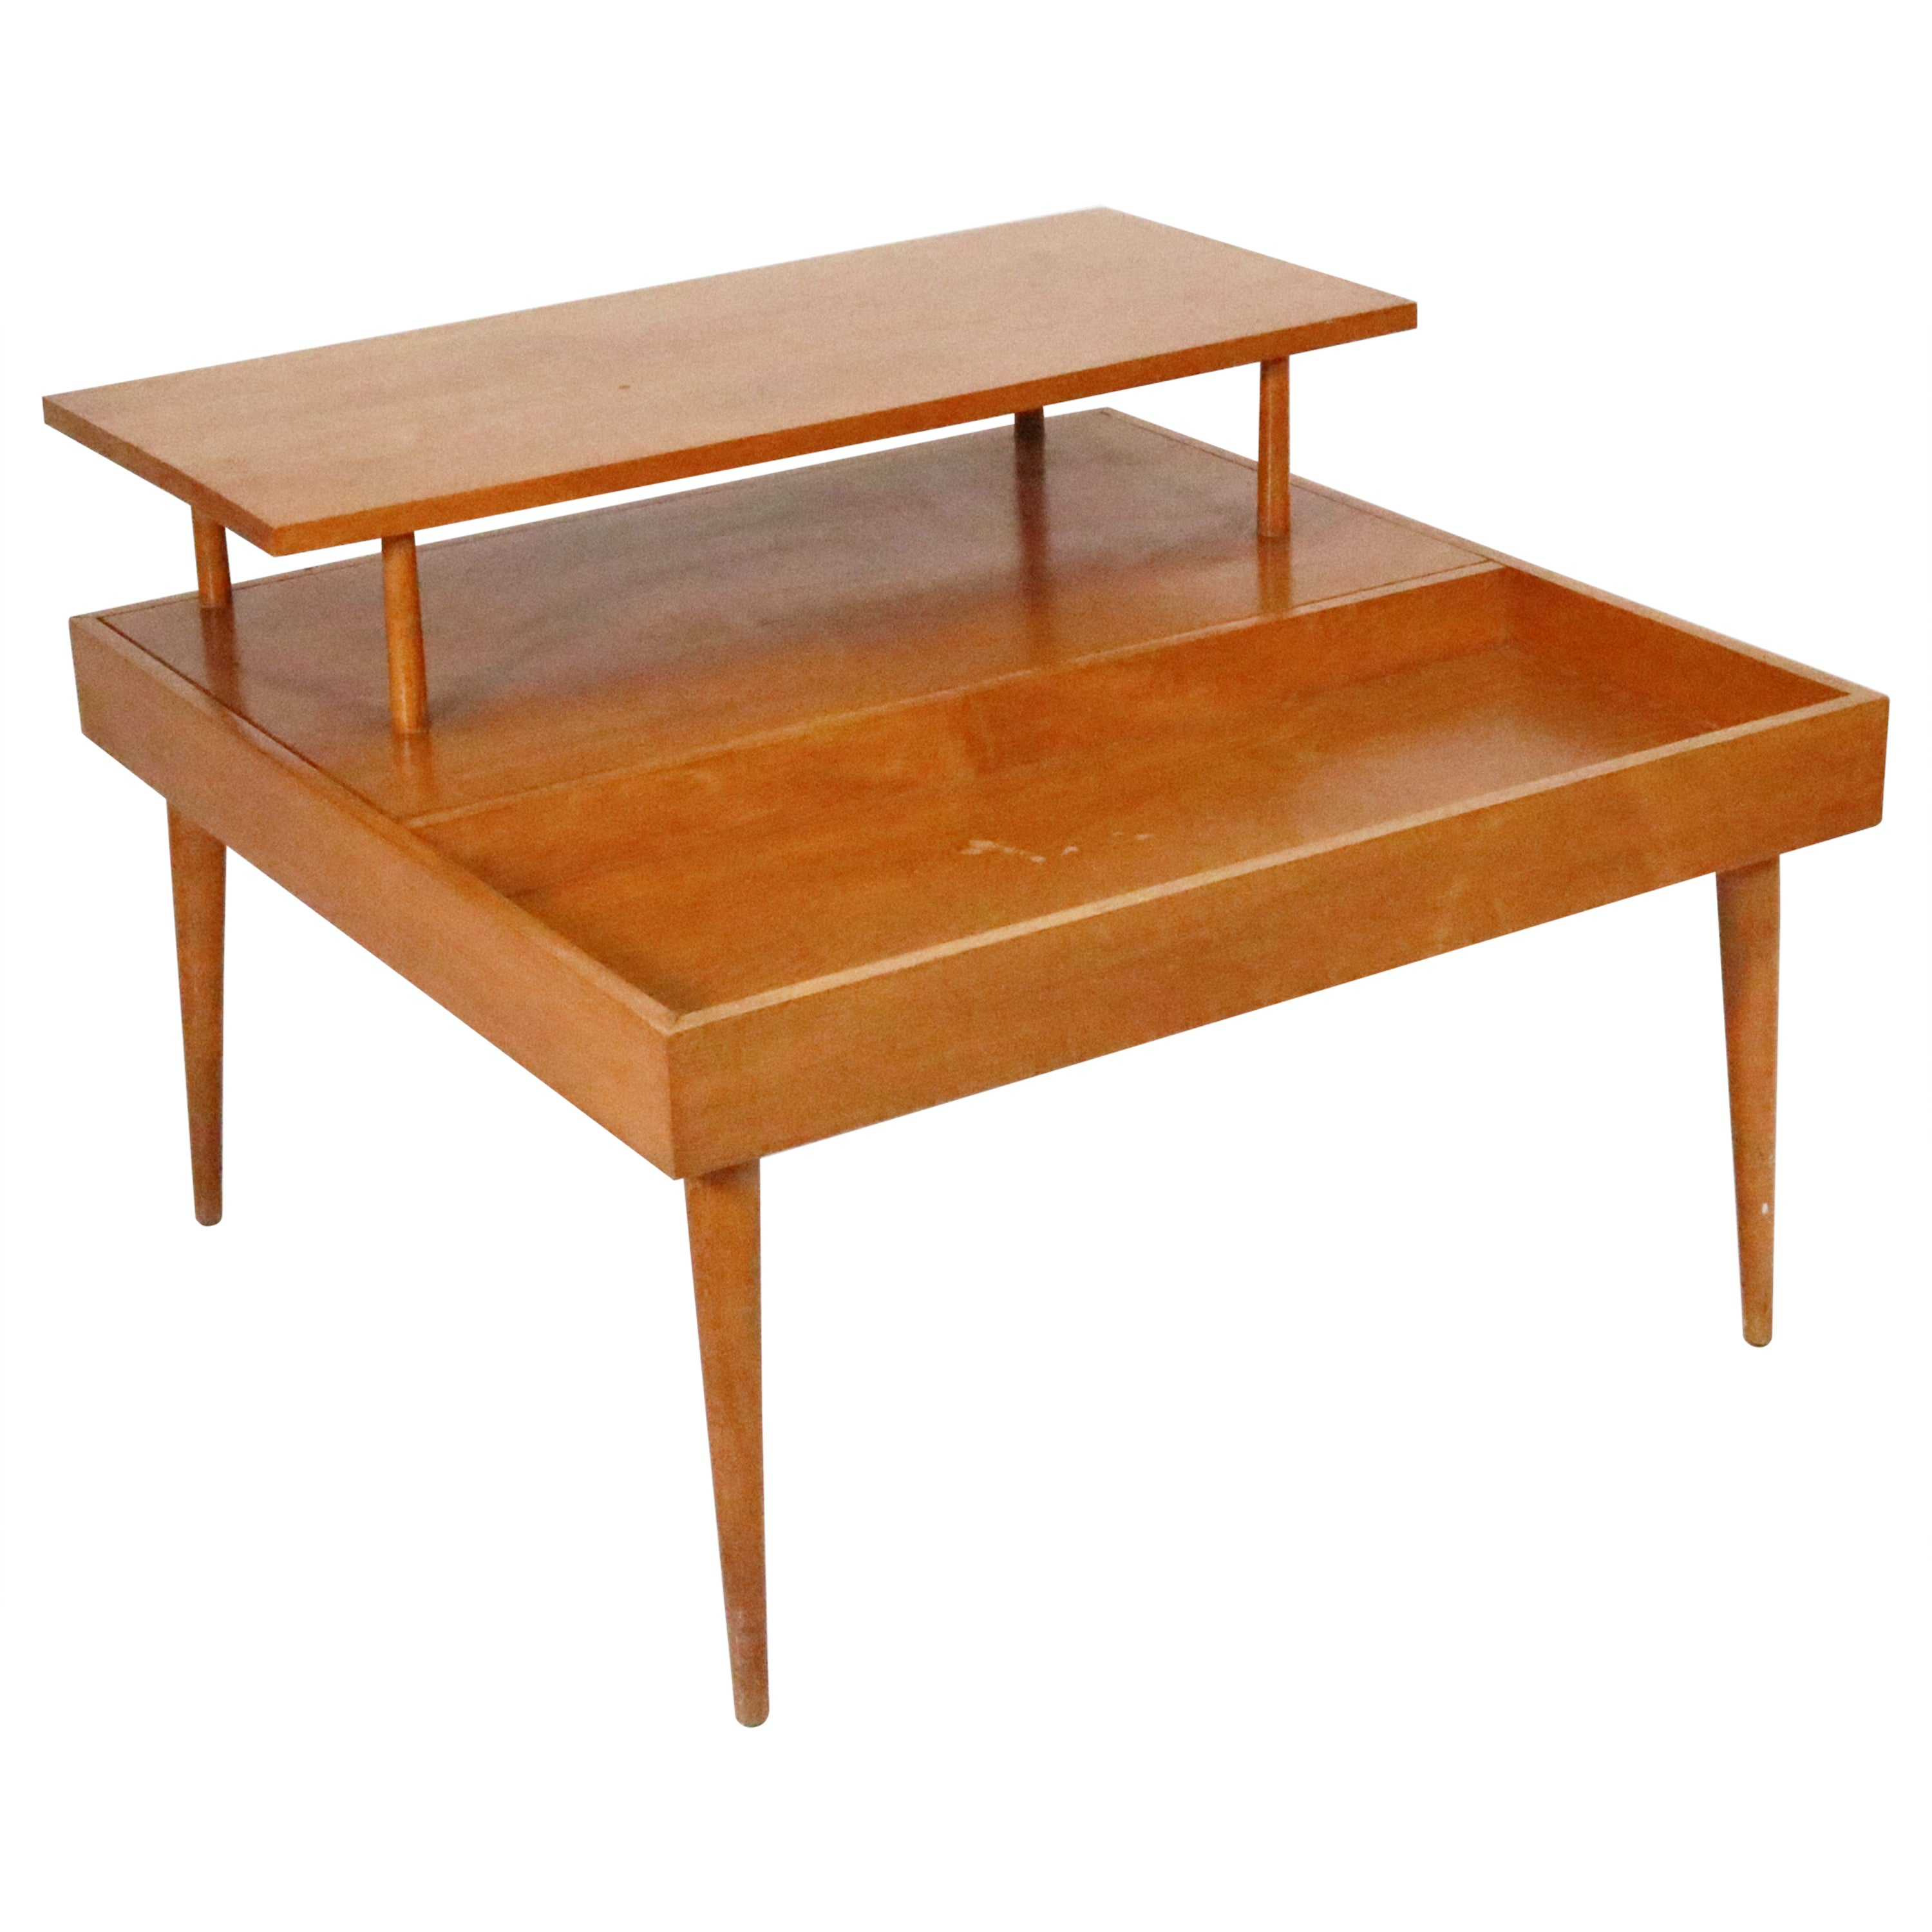 Planner Group Side Table by Paul McCobb for Winchendon